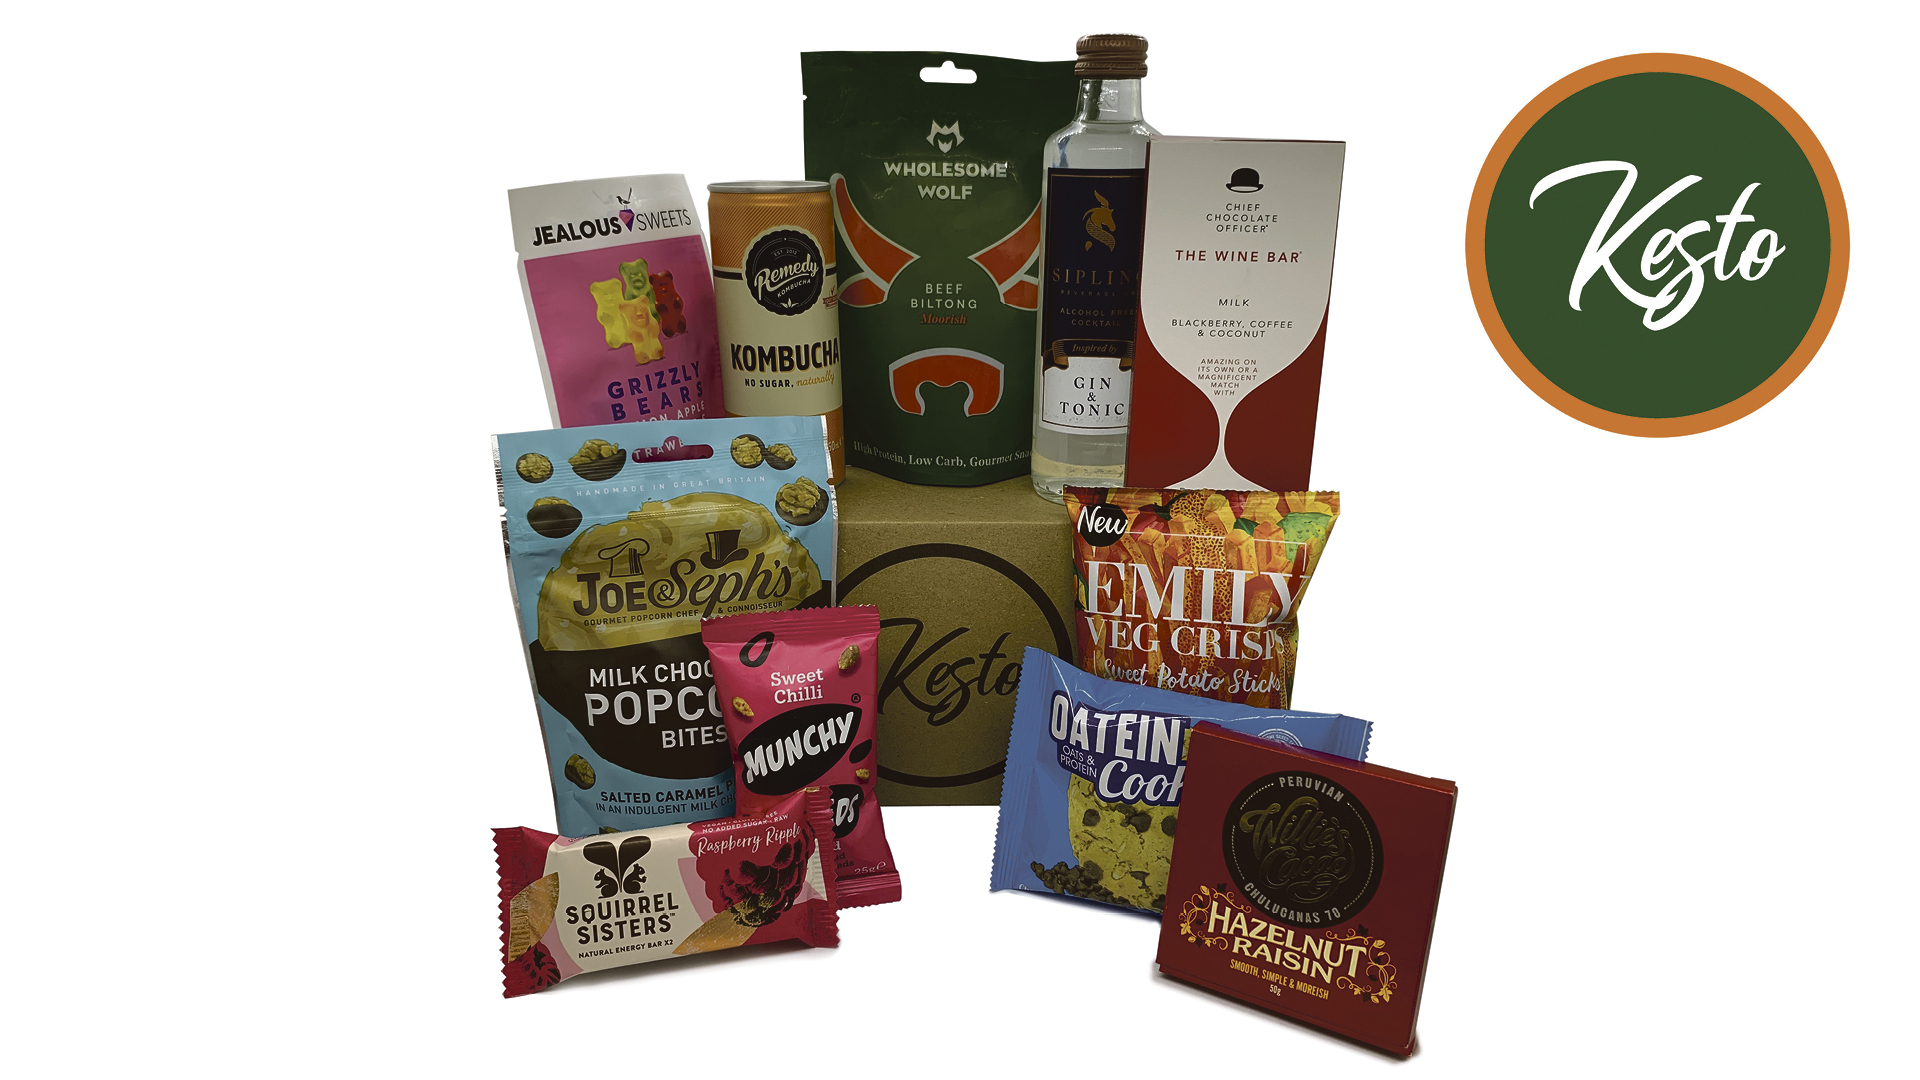 Win you and a friend a year's supply of Kesto food subscription boxes Worth £540!